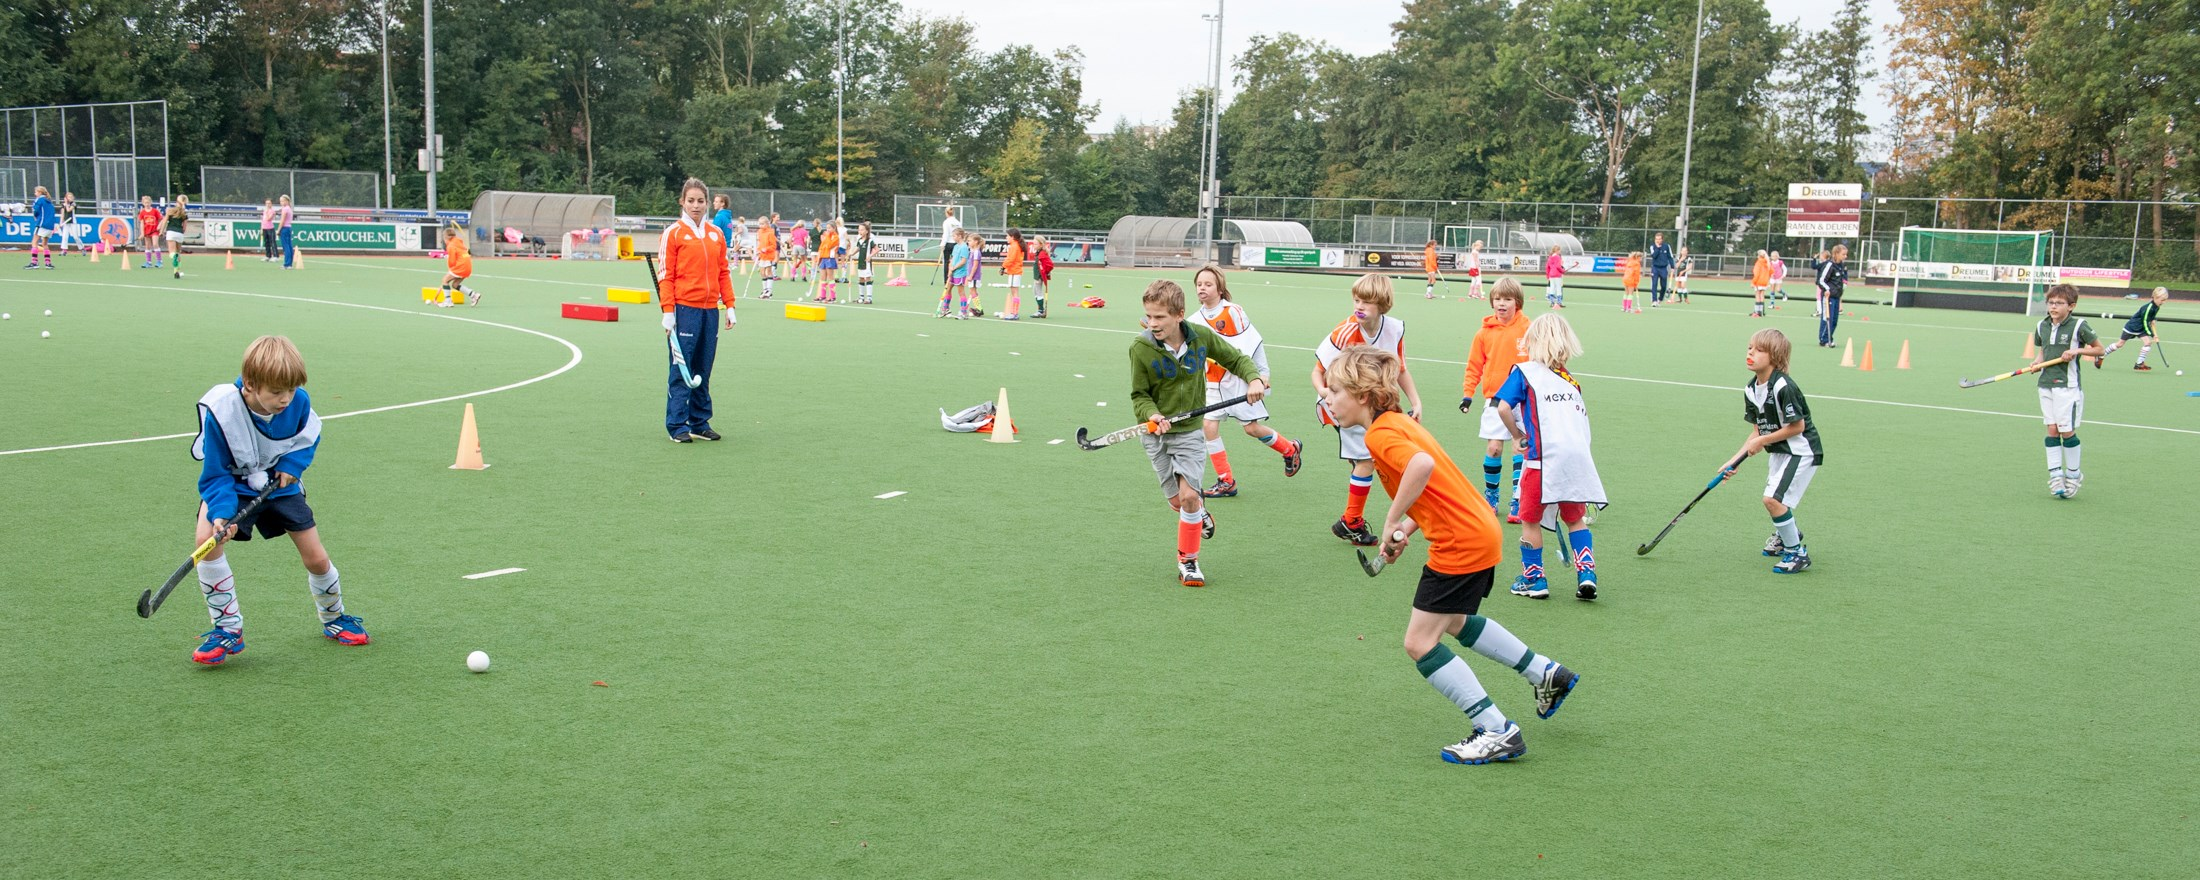 field hockey performance analysis